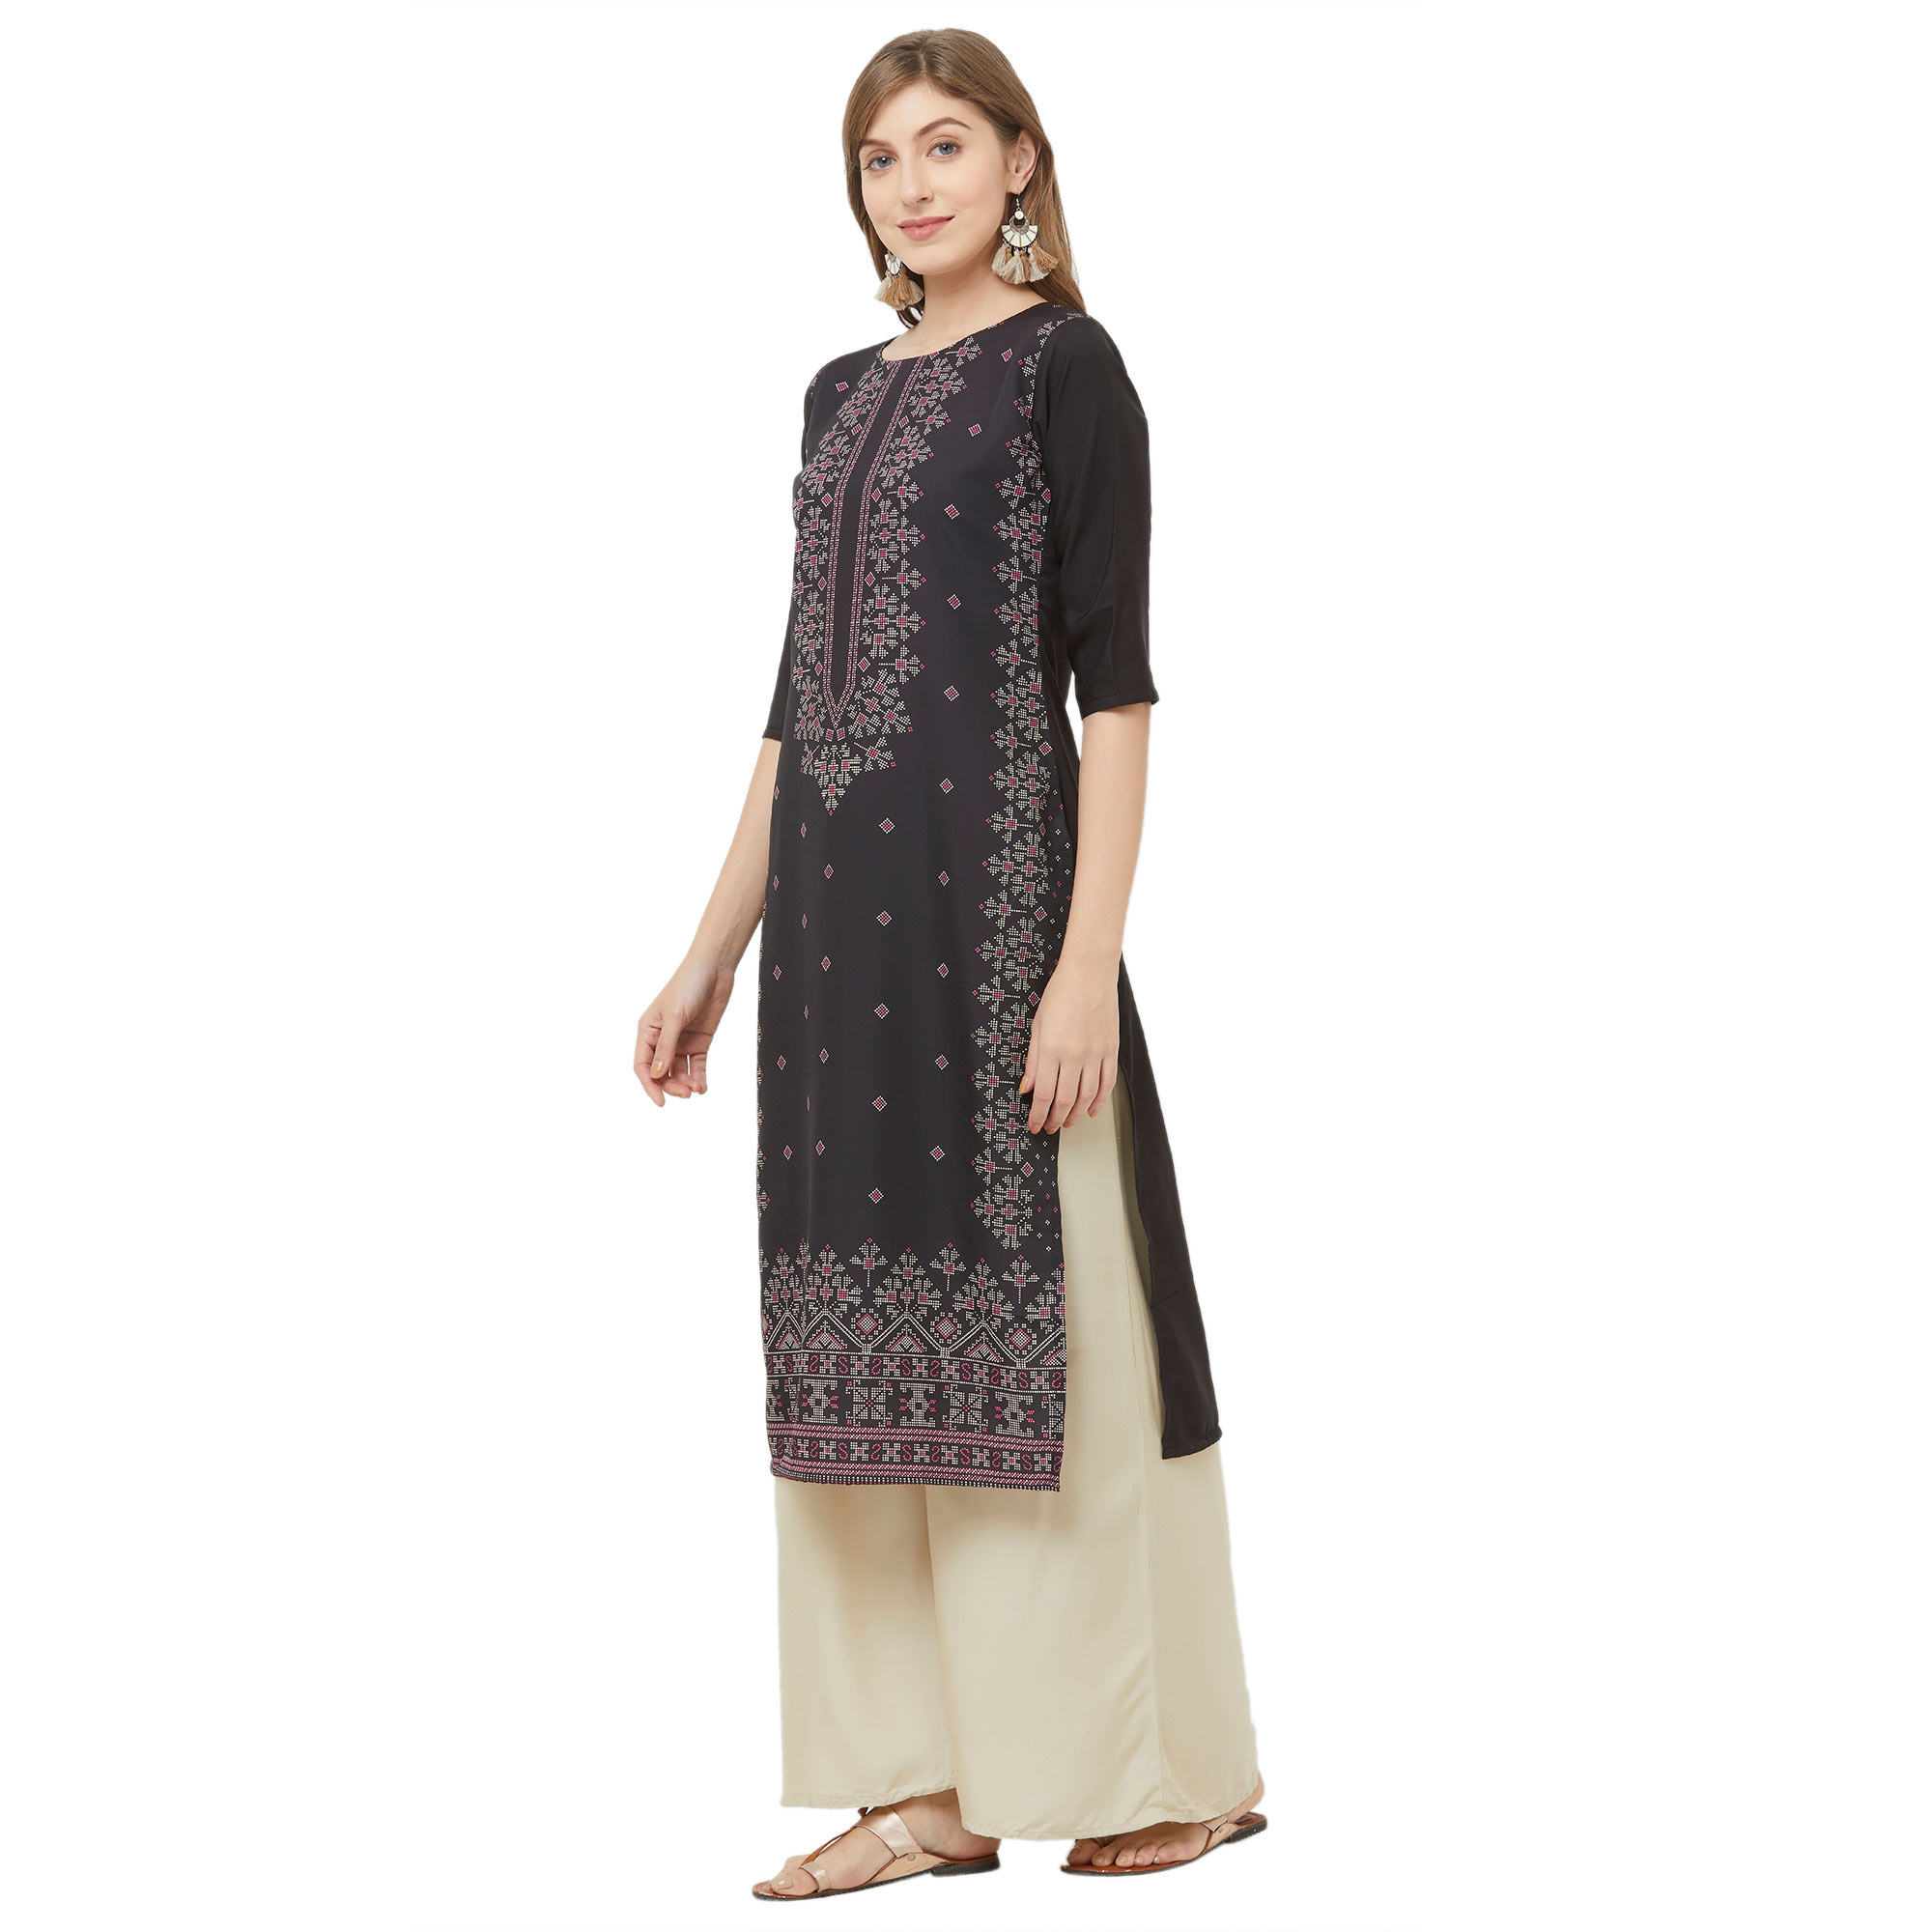 Mesmerising Black Colored Casual Printed Crepe Kurti